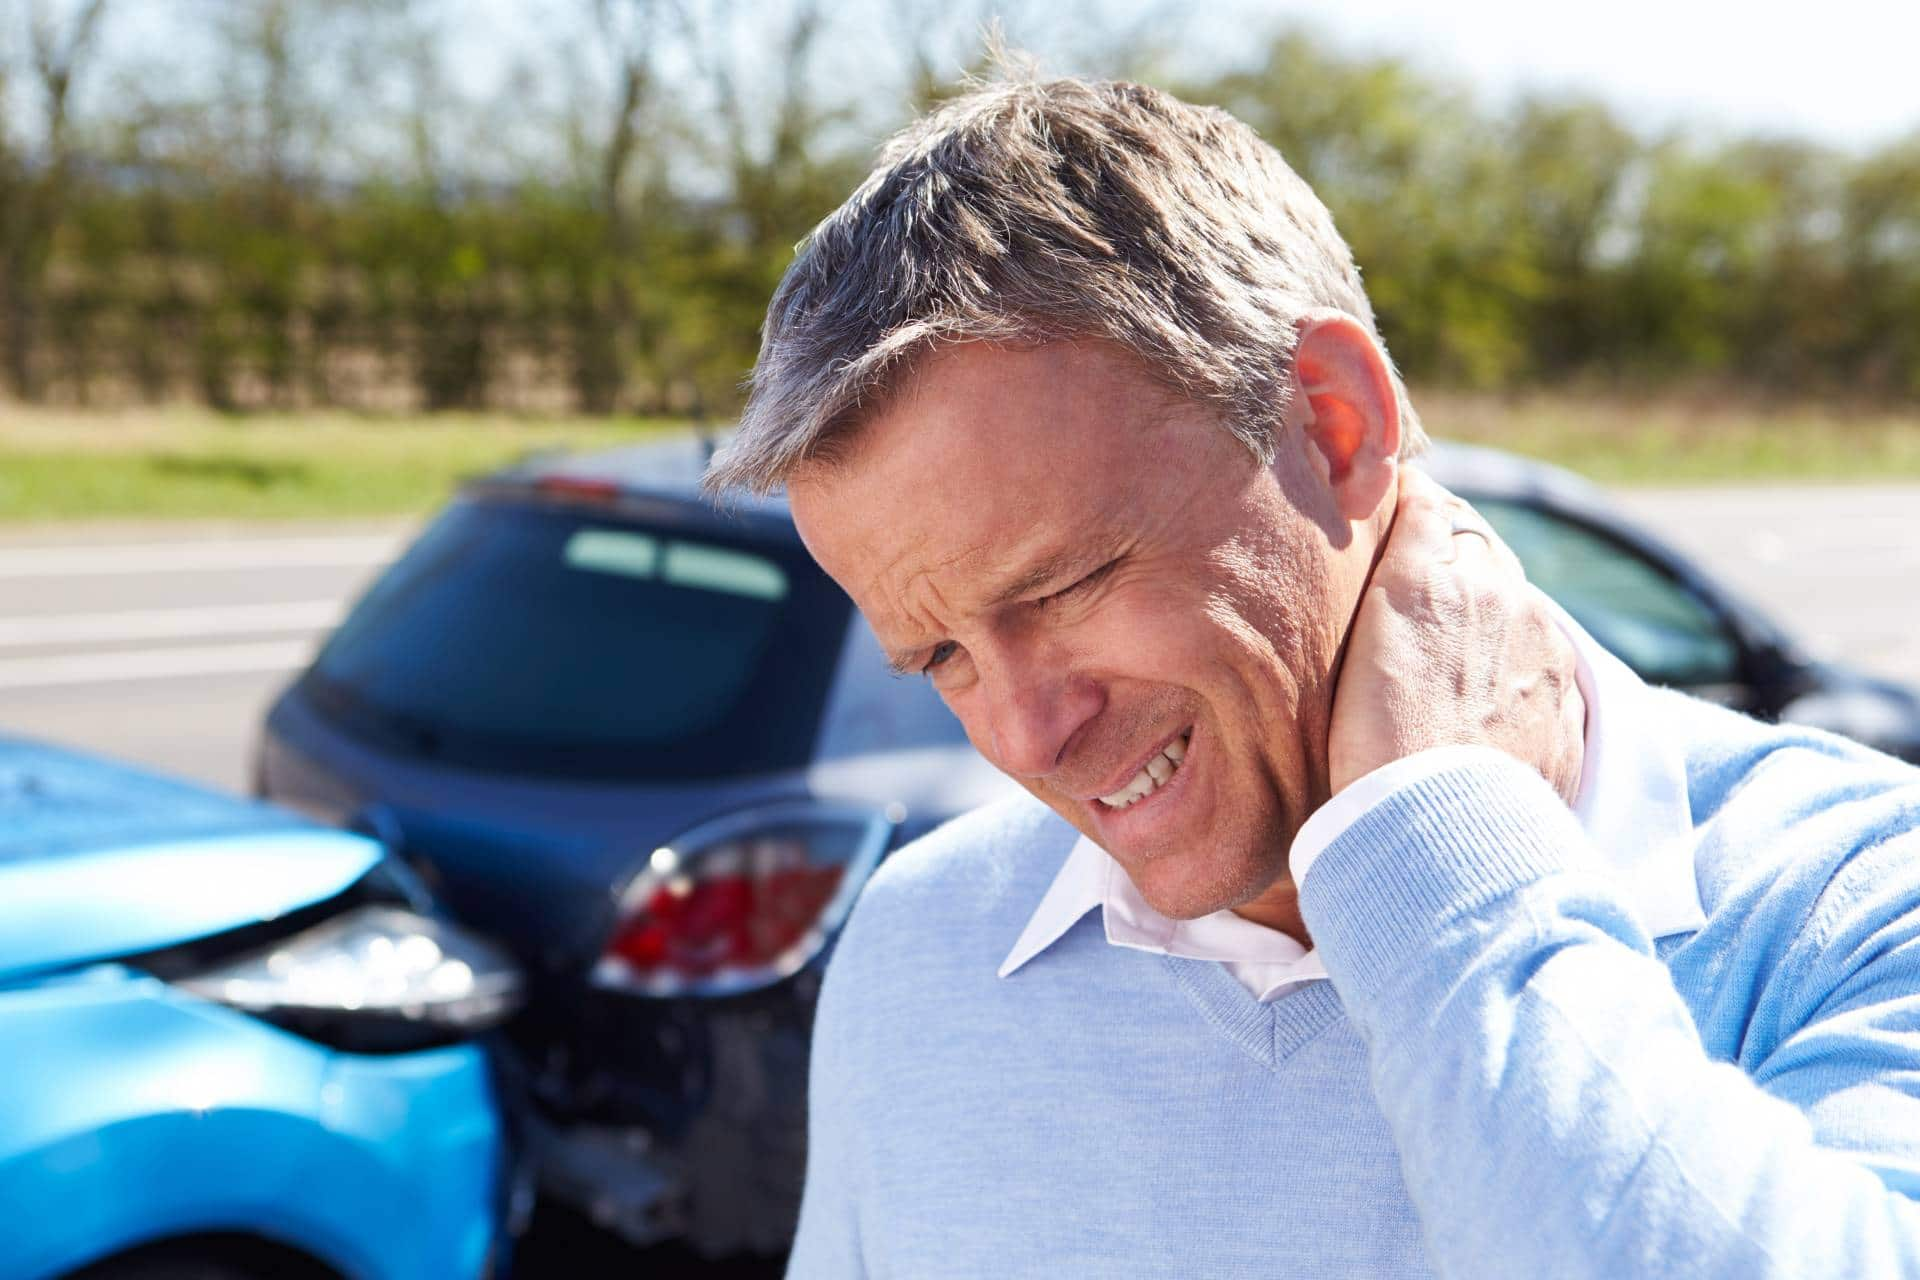 Injured in an Auto Accident? Visit an Angell Law Firm Personal Injury Lawyer for a free consultation.